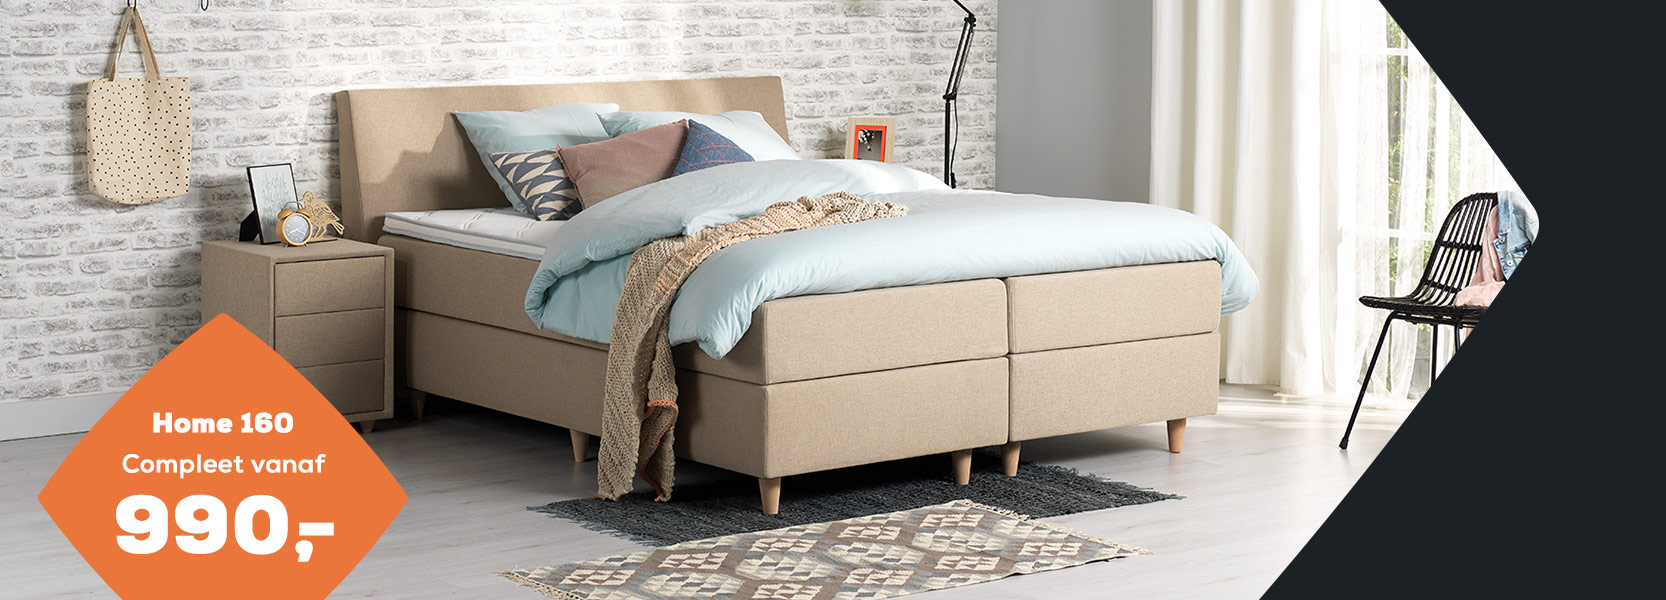 Boxspring Home 160 Summer Deals | Swiss Sense